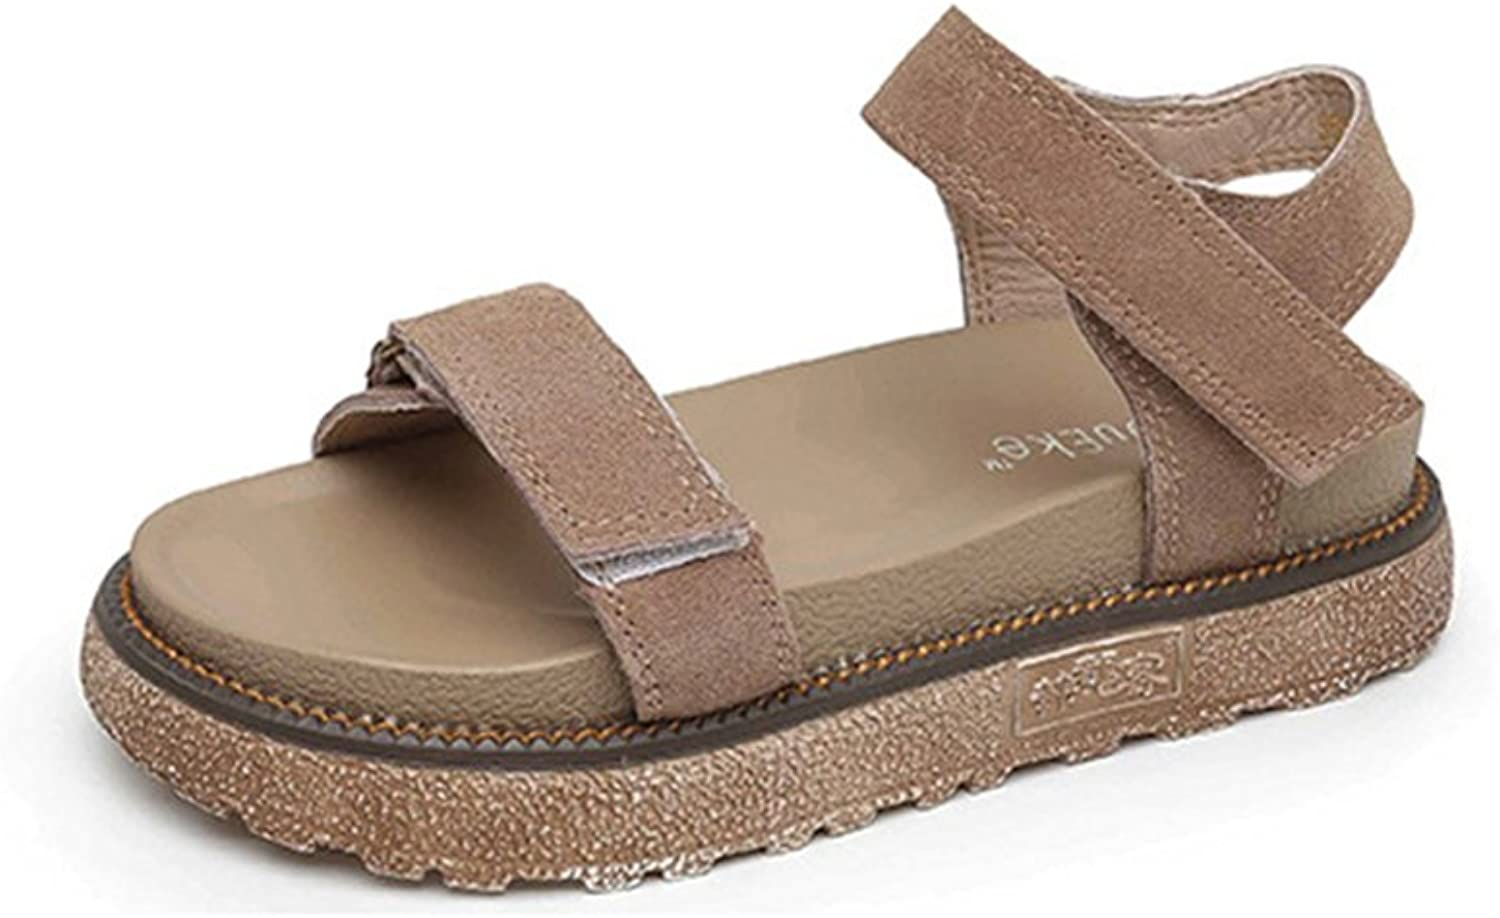 Navoku Women's Leather Skidproof Sandals Summer Sandles